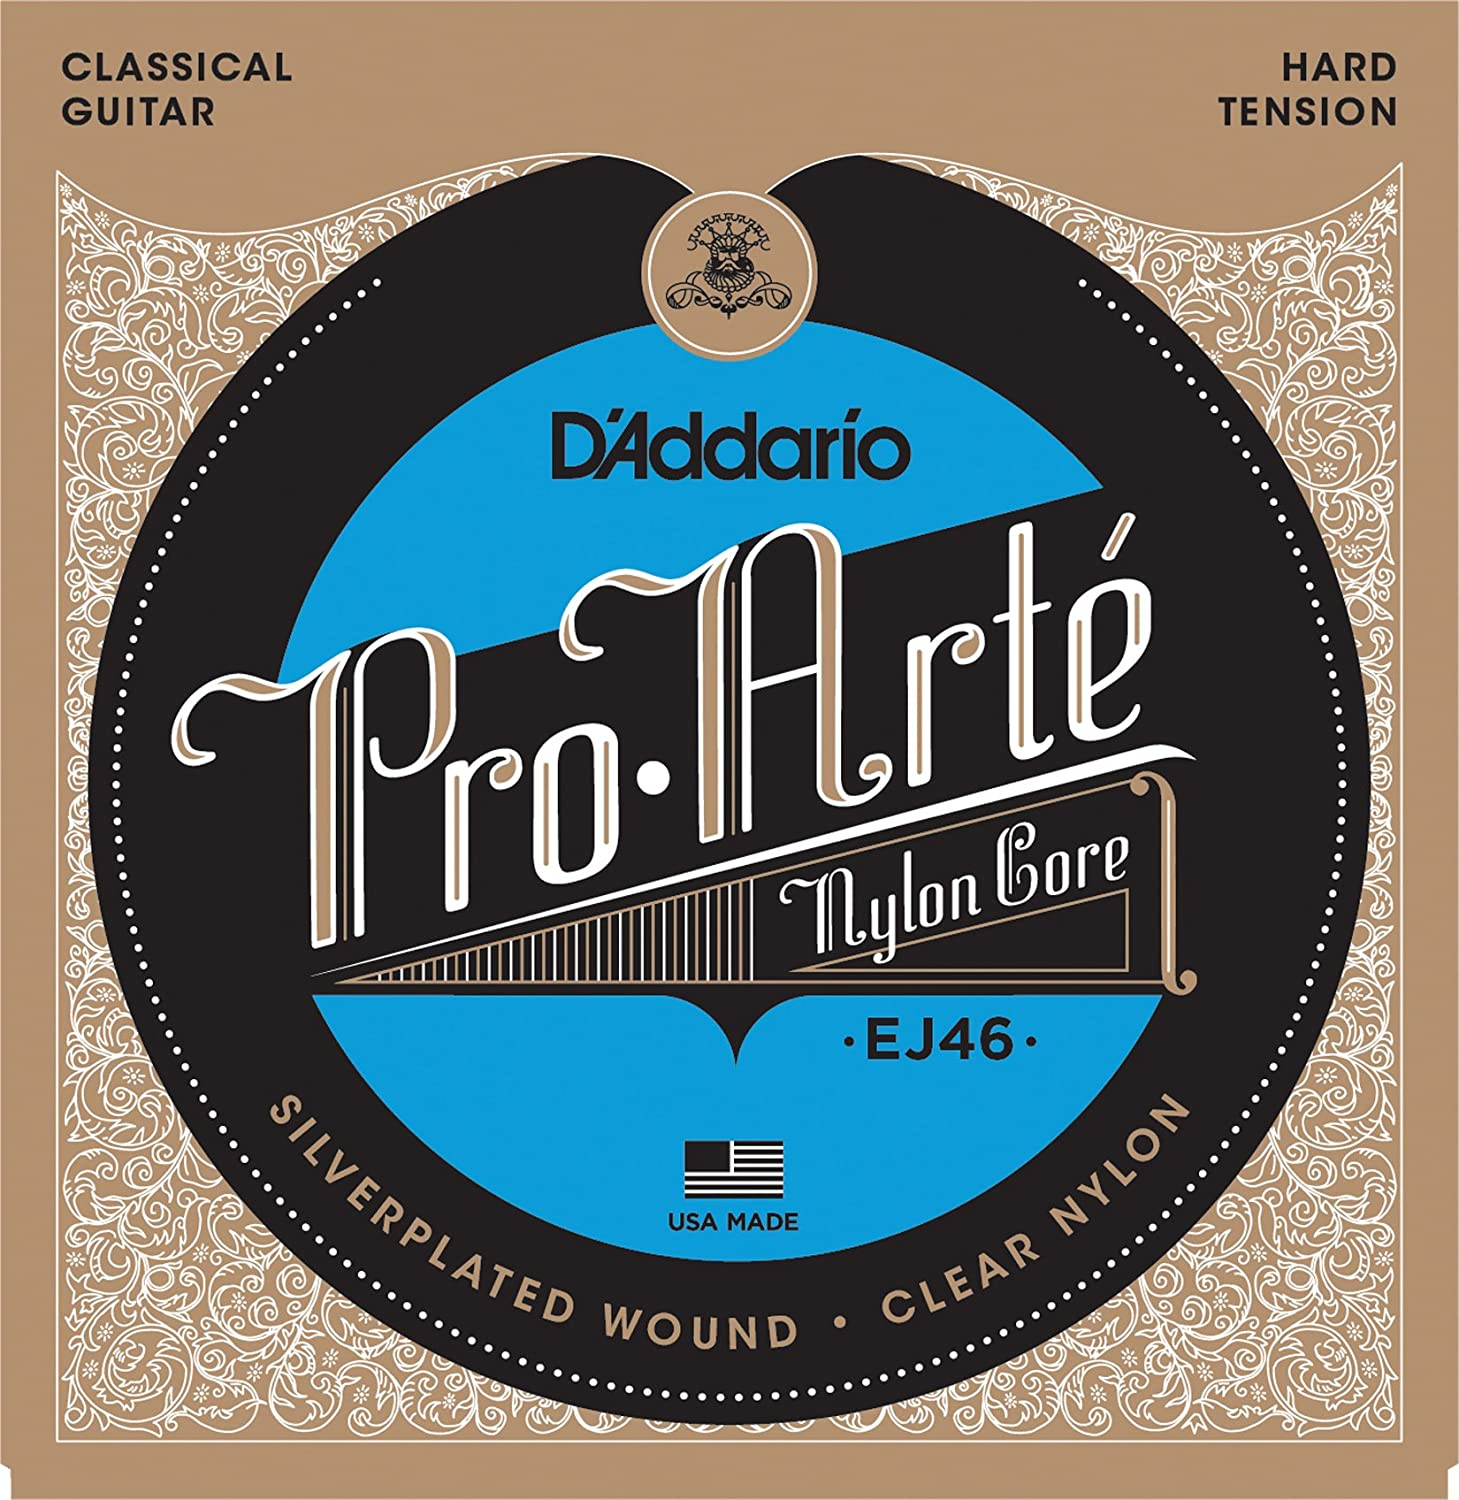 Top 7 Best Classical Guitar Strings Reviews in 2020 2